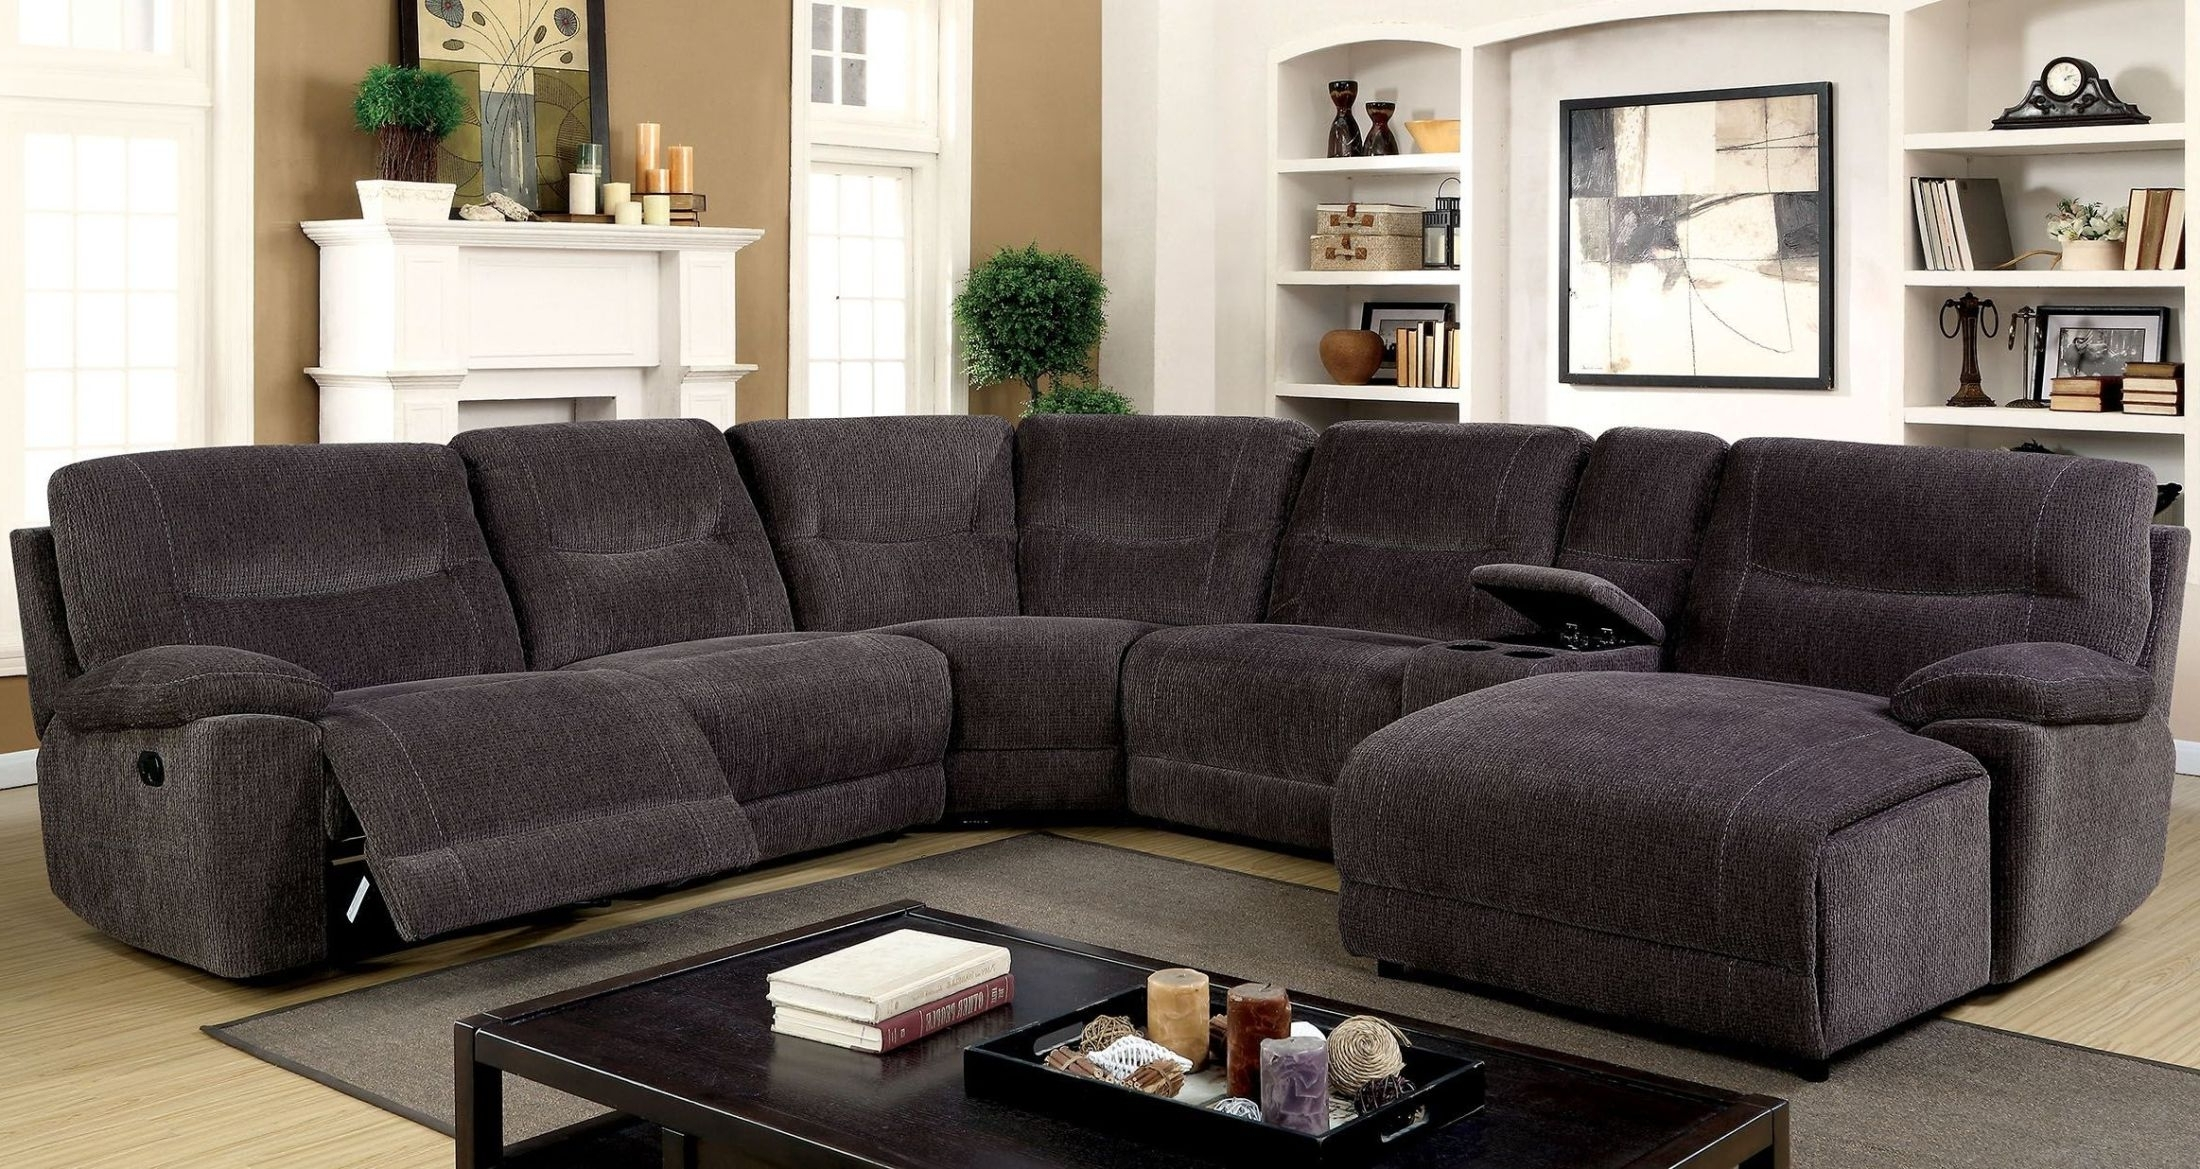 Most Popular Black Leather Sectionals With Chaise For Modular Sofa Modular Sectional Sofa Black Leather Sectional (View 9 of 15)